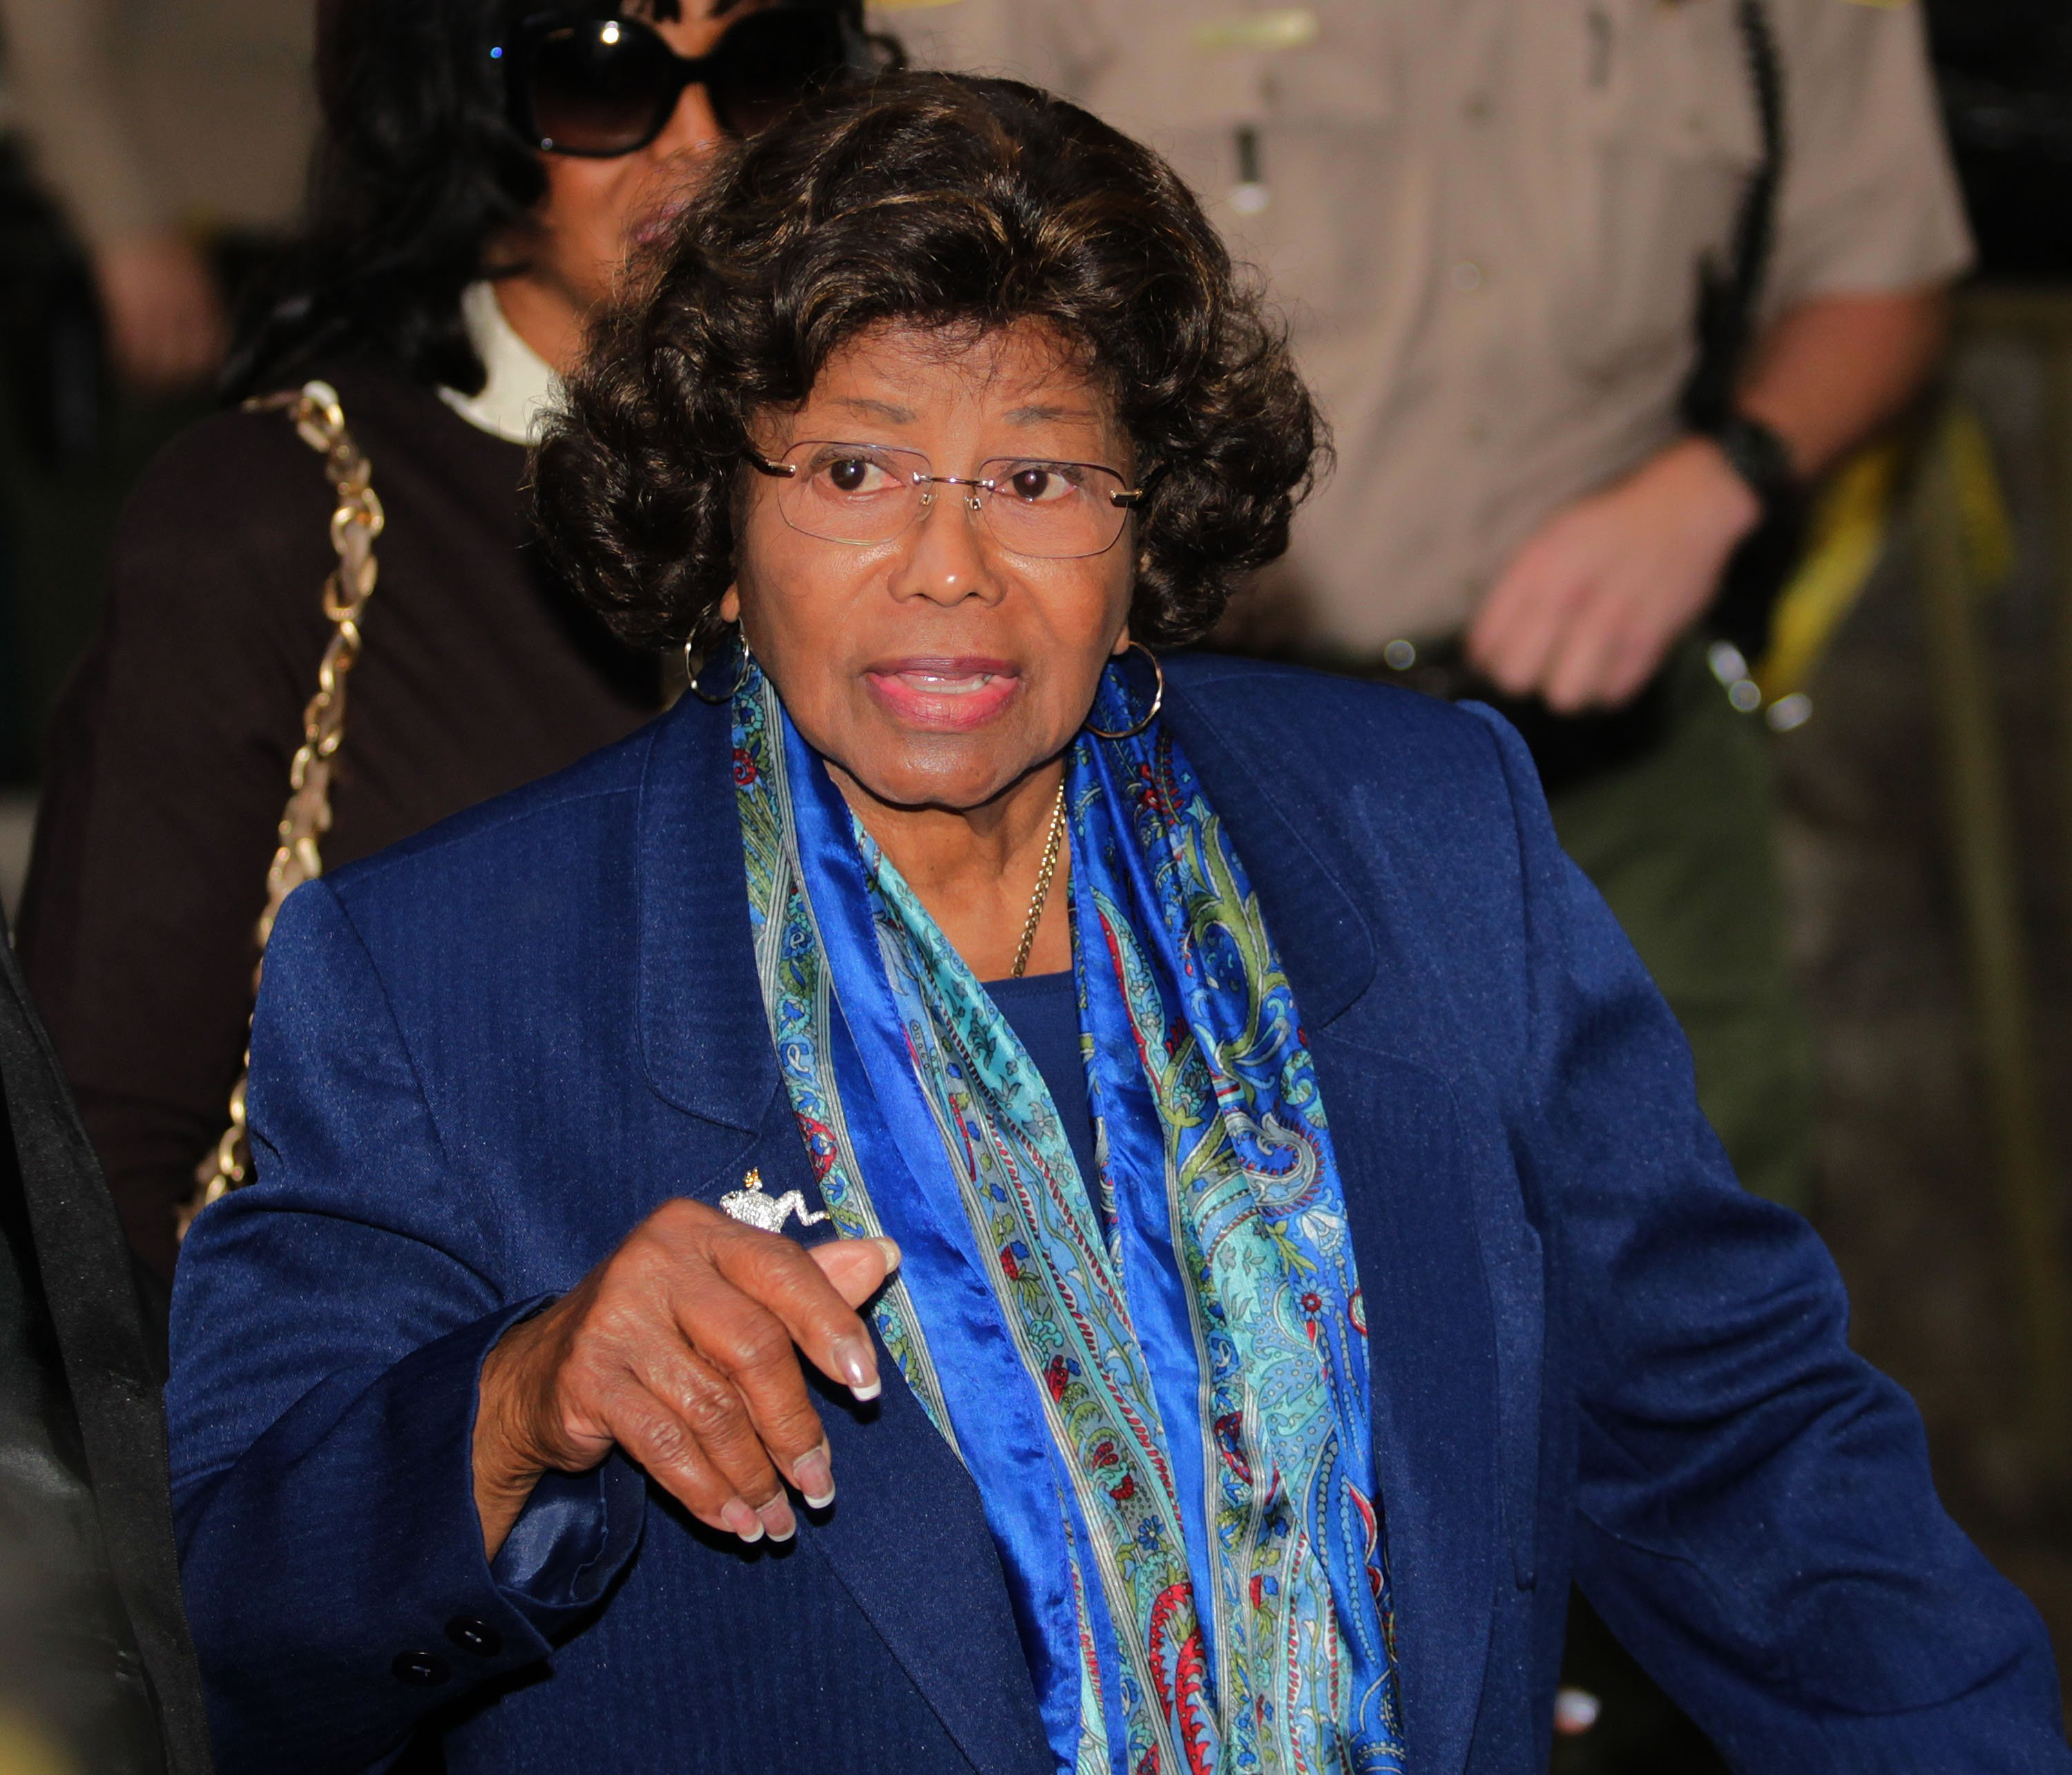 Katherine Jackson enters the Los Angeles County courthouse for the arraignment of Dr. Conrad Murray on January 25, 2011. | Photo: GettyImages